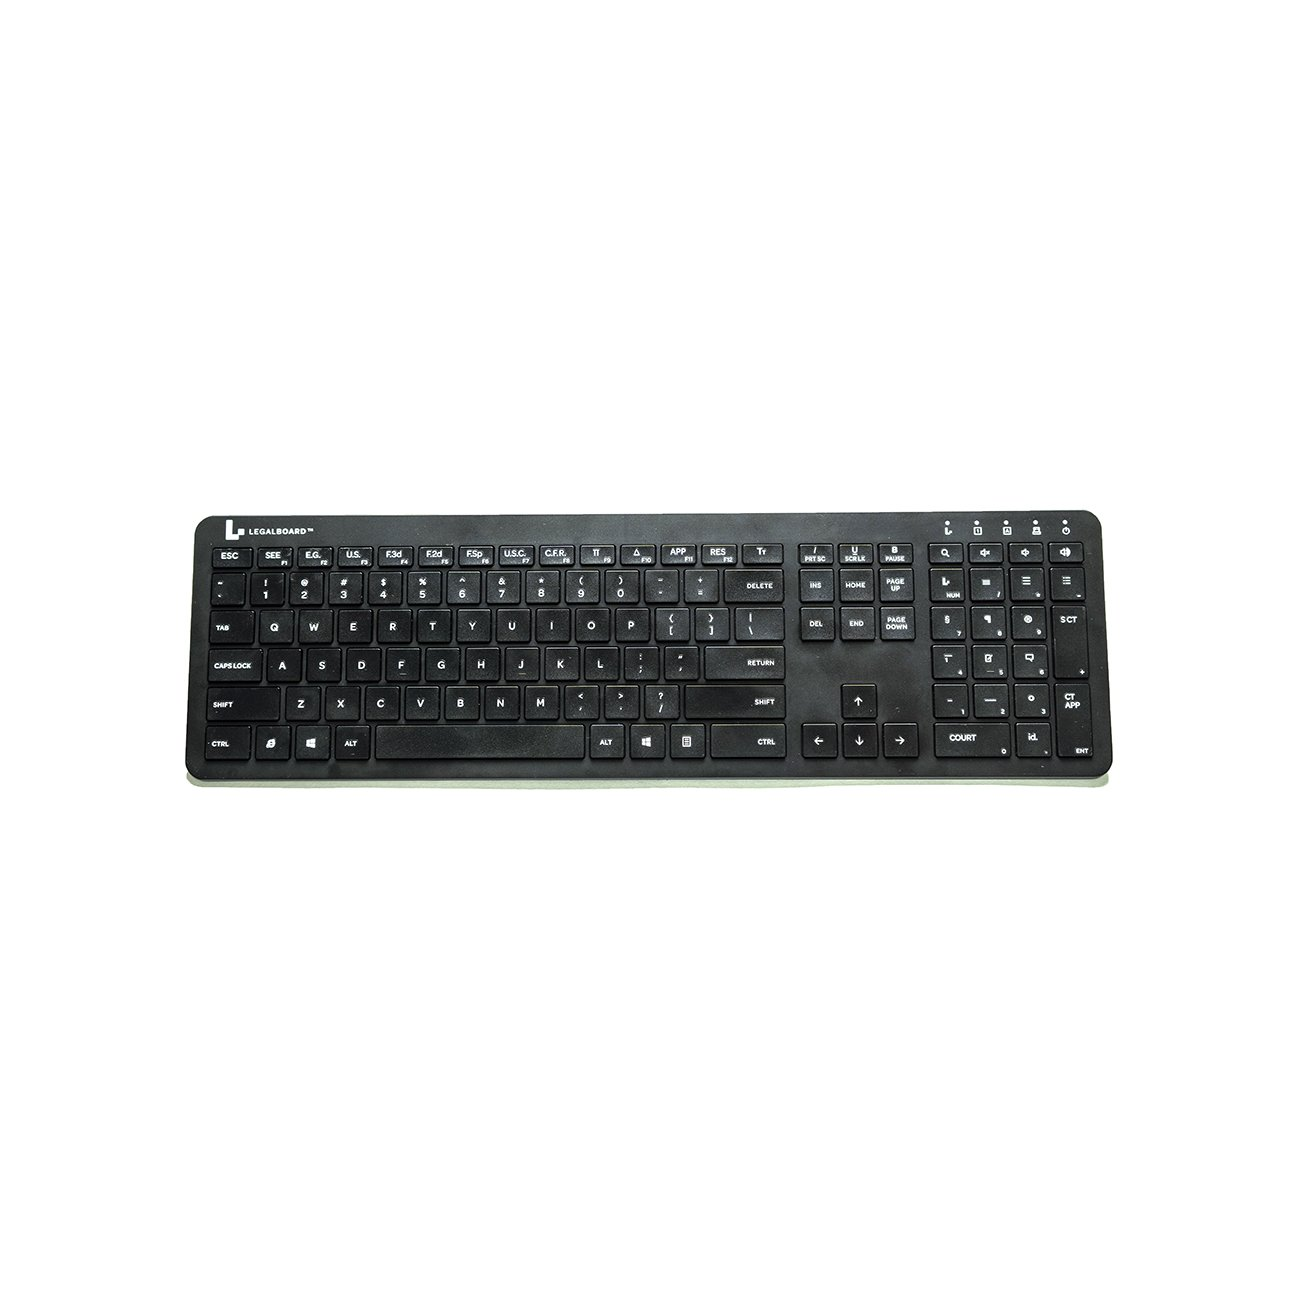 PRESALE ONLY! LegalBoard Legal Keyboard - Wireless Version